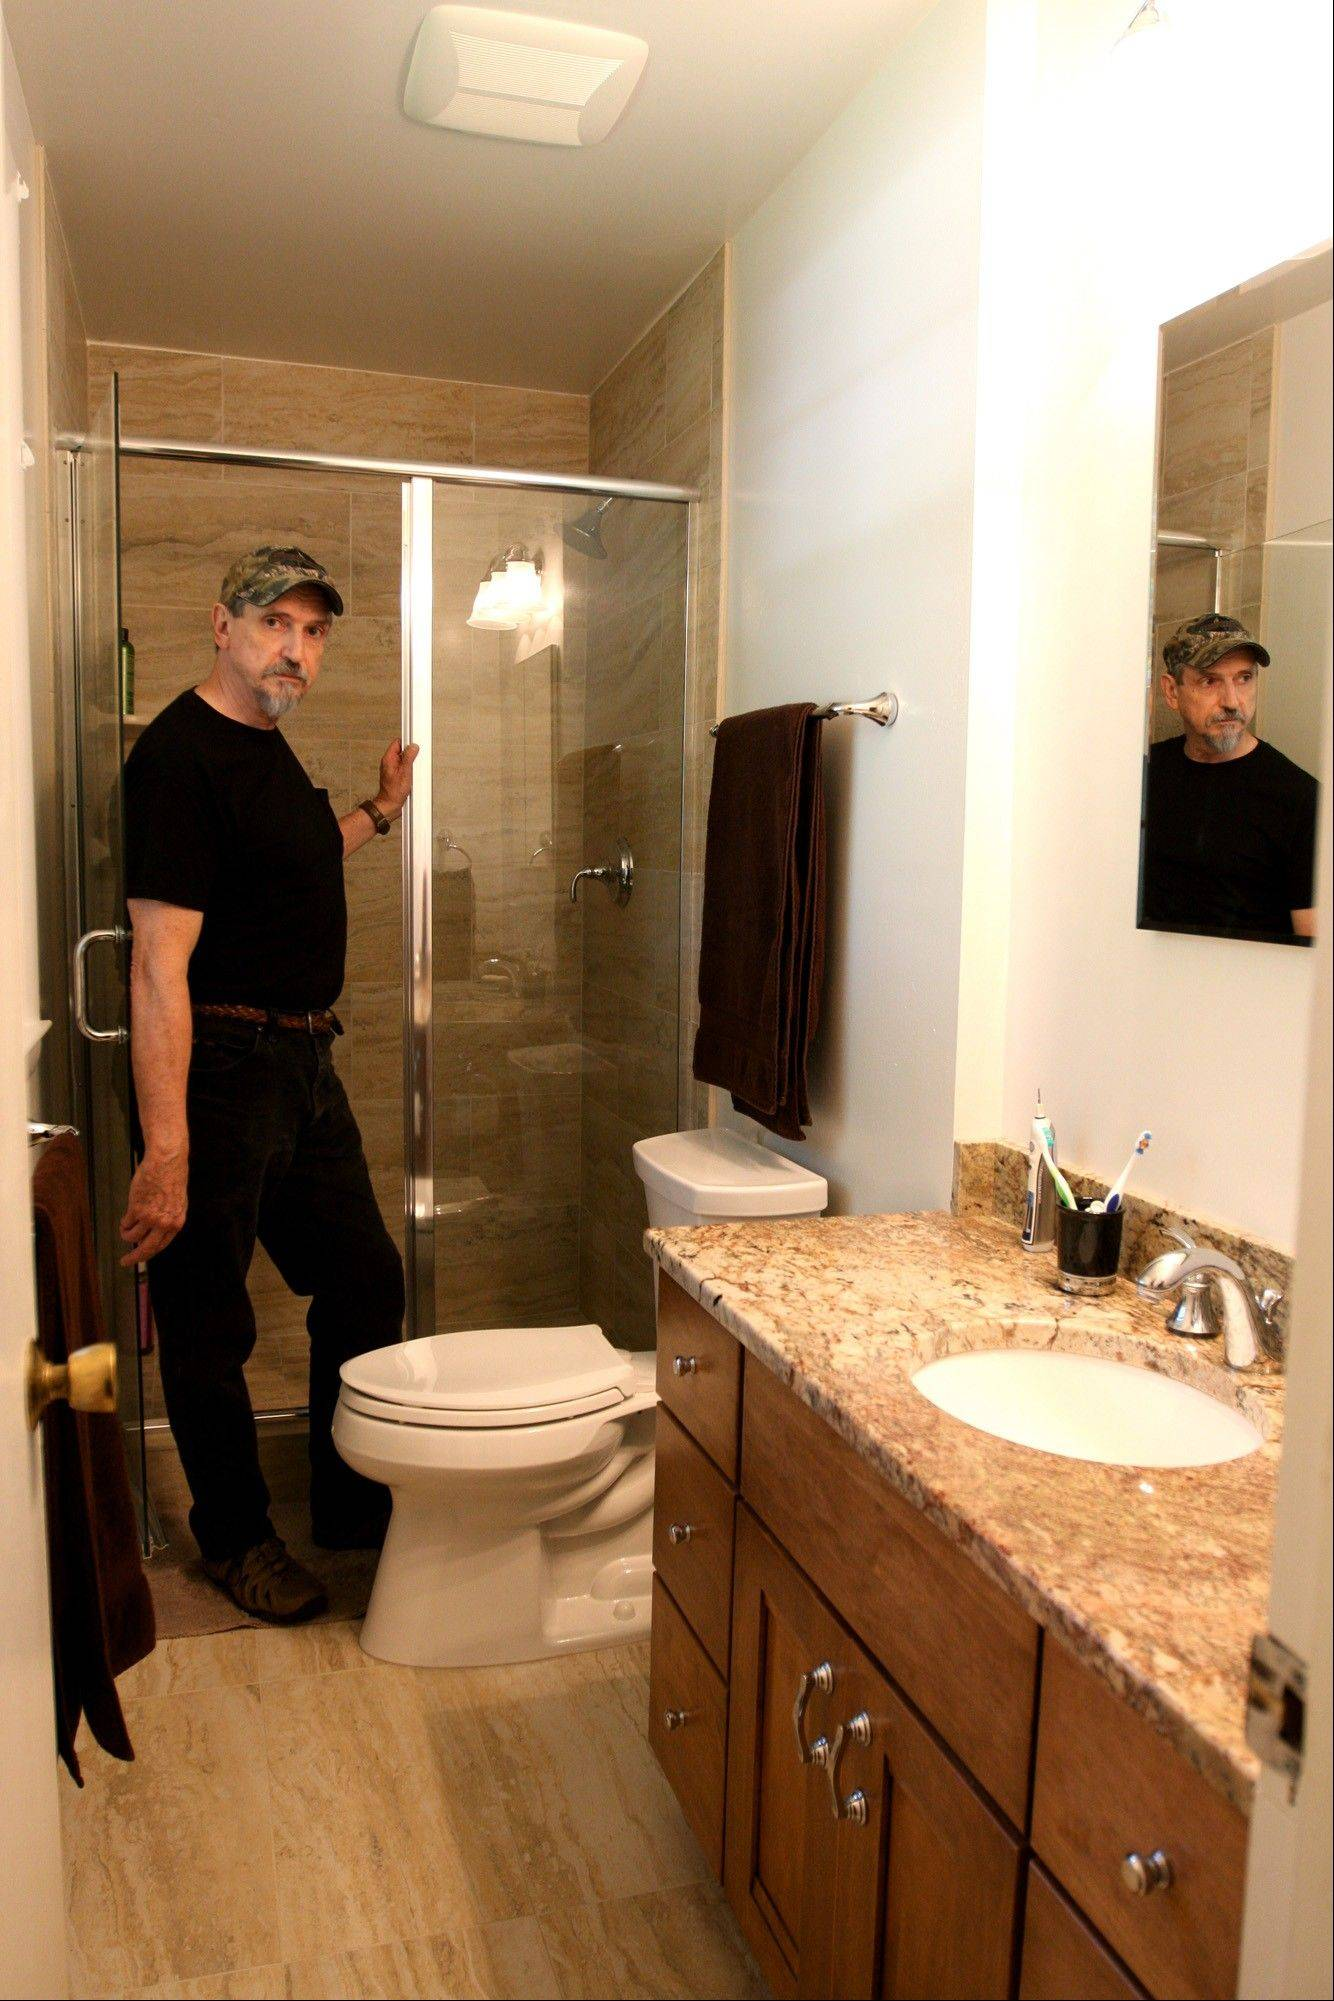 Richard Miller, pictured here, and his wife Hannah Laufe spent about $20,000 to renovate their previously pink bathroom.